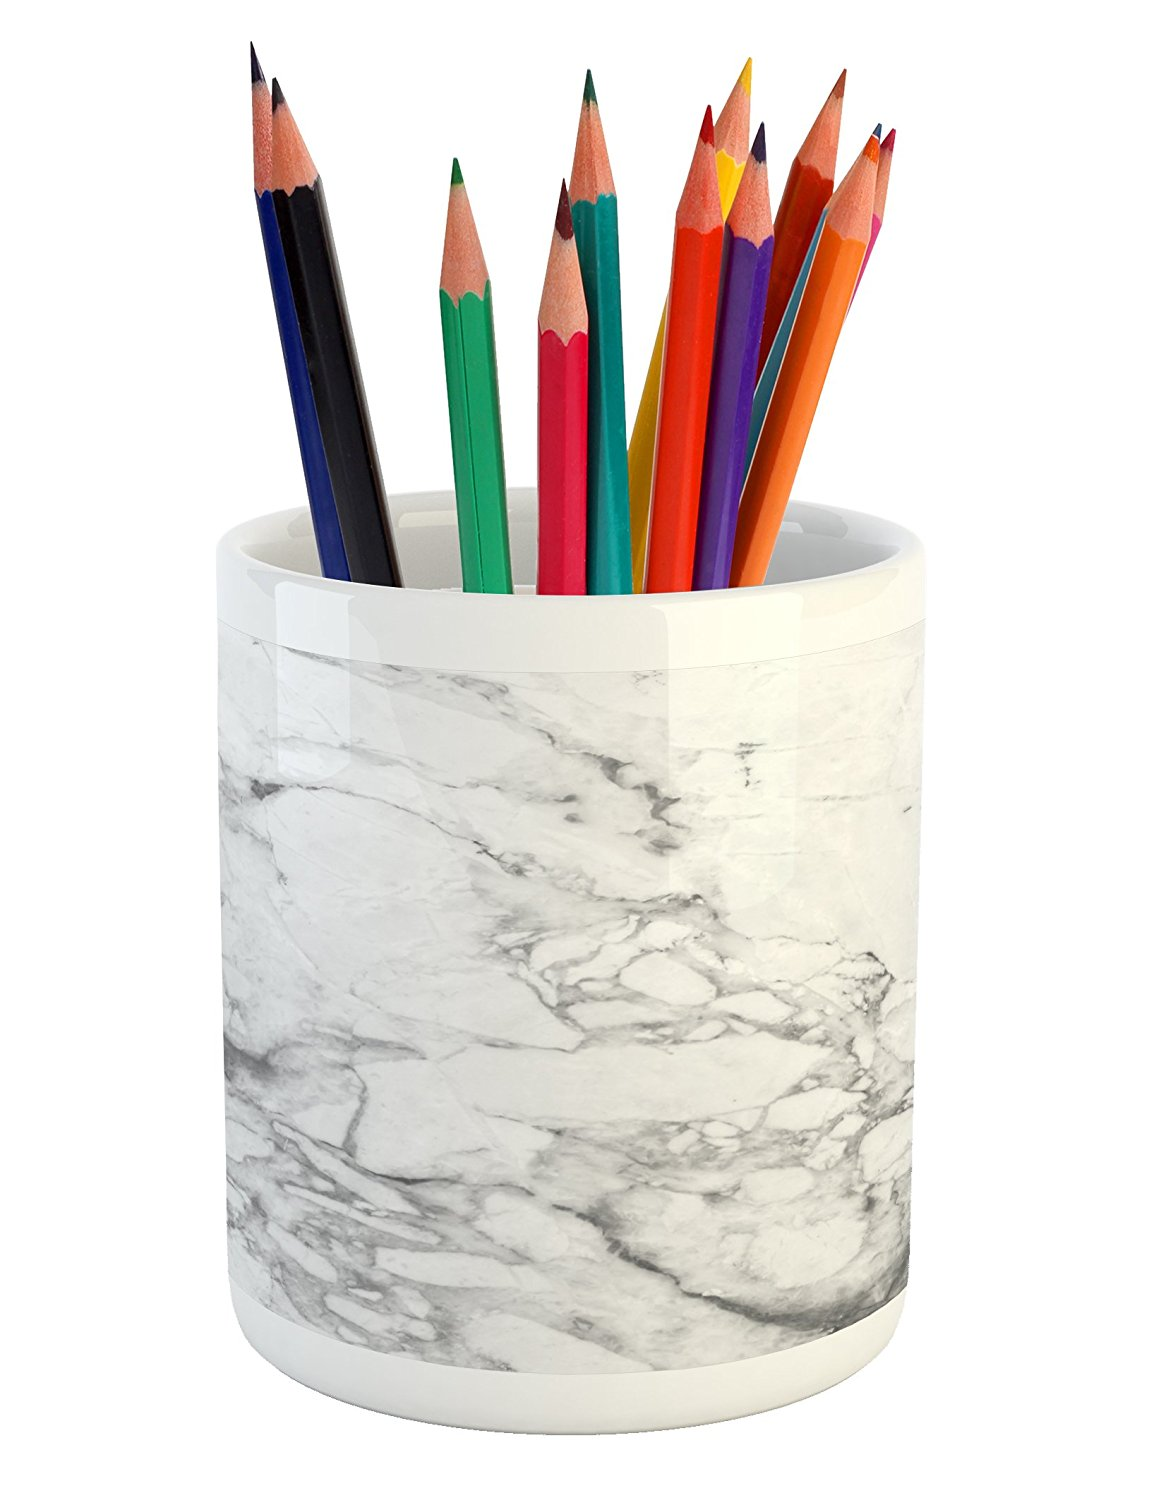 Marble Pencil Pen Holder by Lunarable, Old Fashion Grungy Cultured Marbling Motif Formation Lines Retro Artsy Design Print, Printed Ceramic Pencil Pen Holder for Desk Office Accessory, White Grey